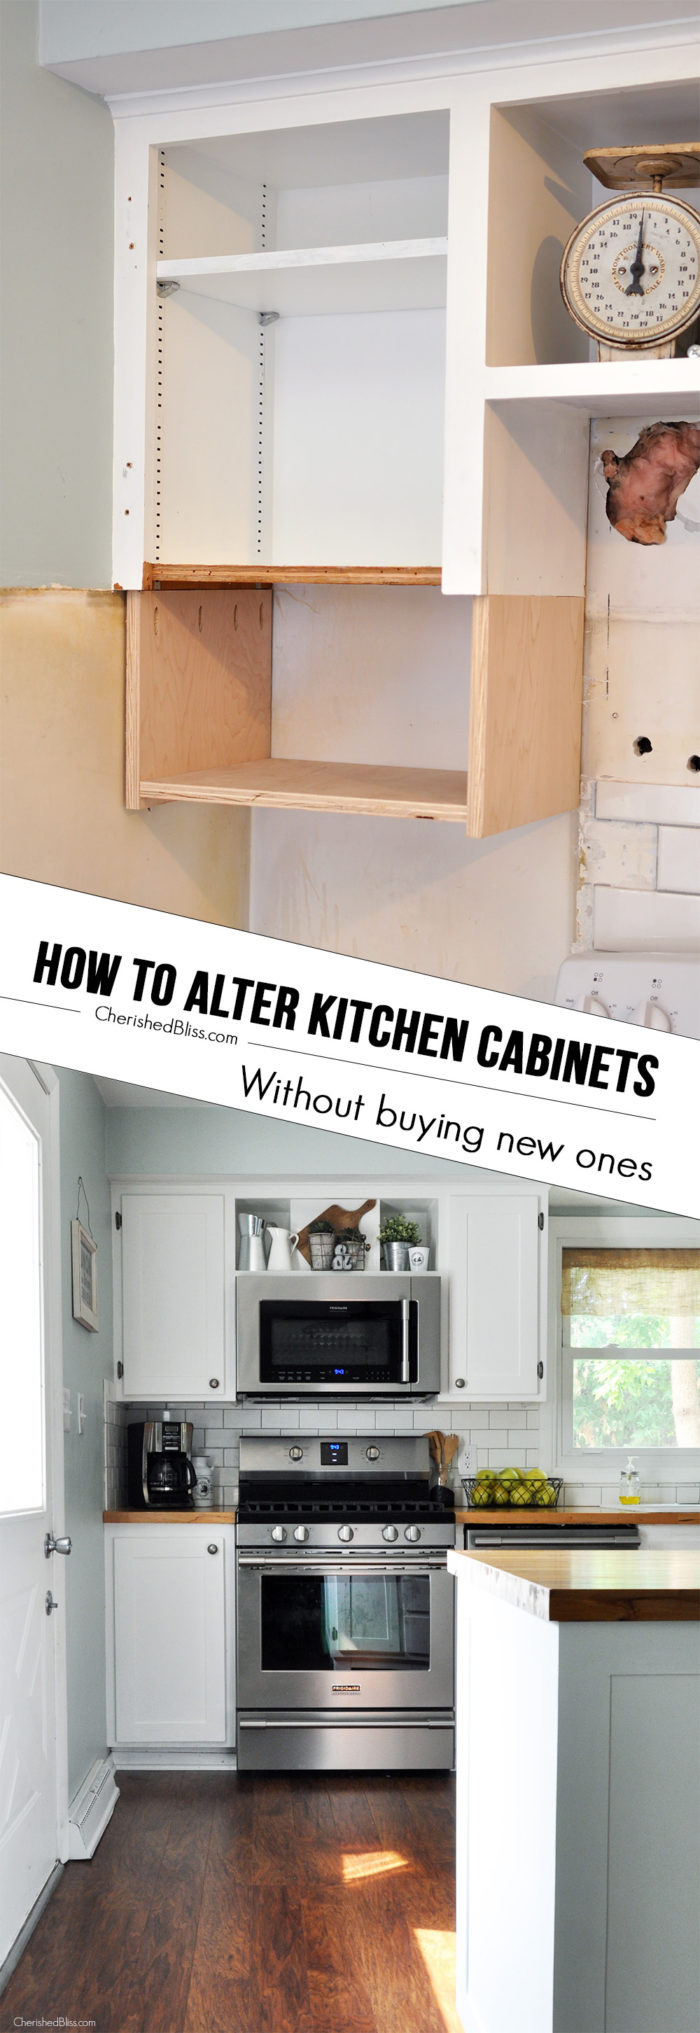 How to Alter Kitchen Cabinets 700x2033